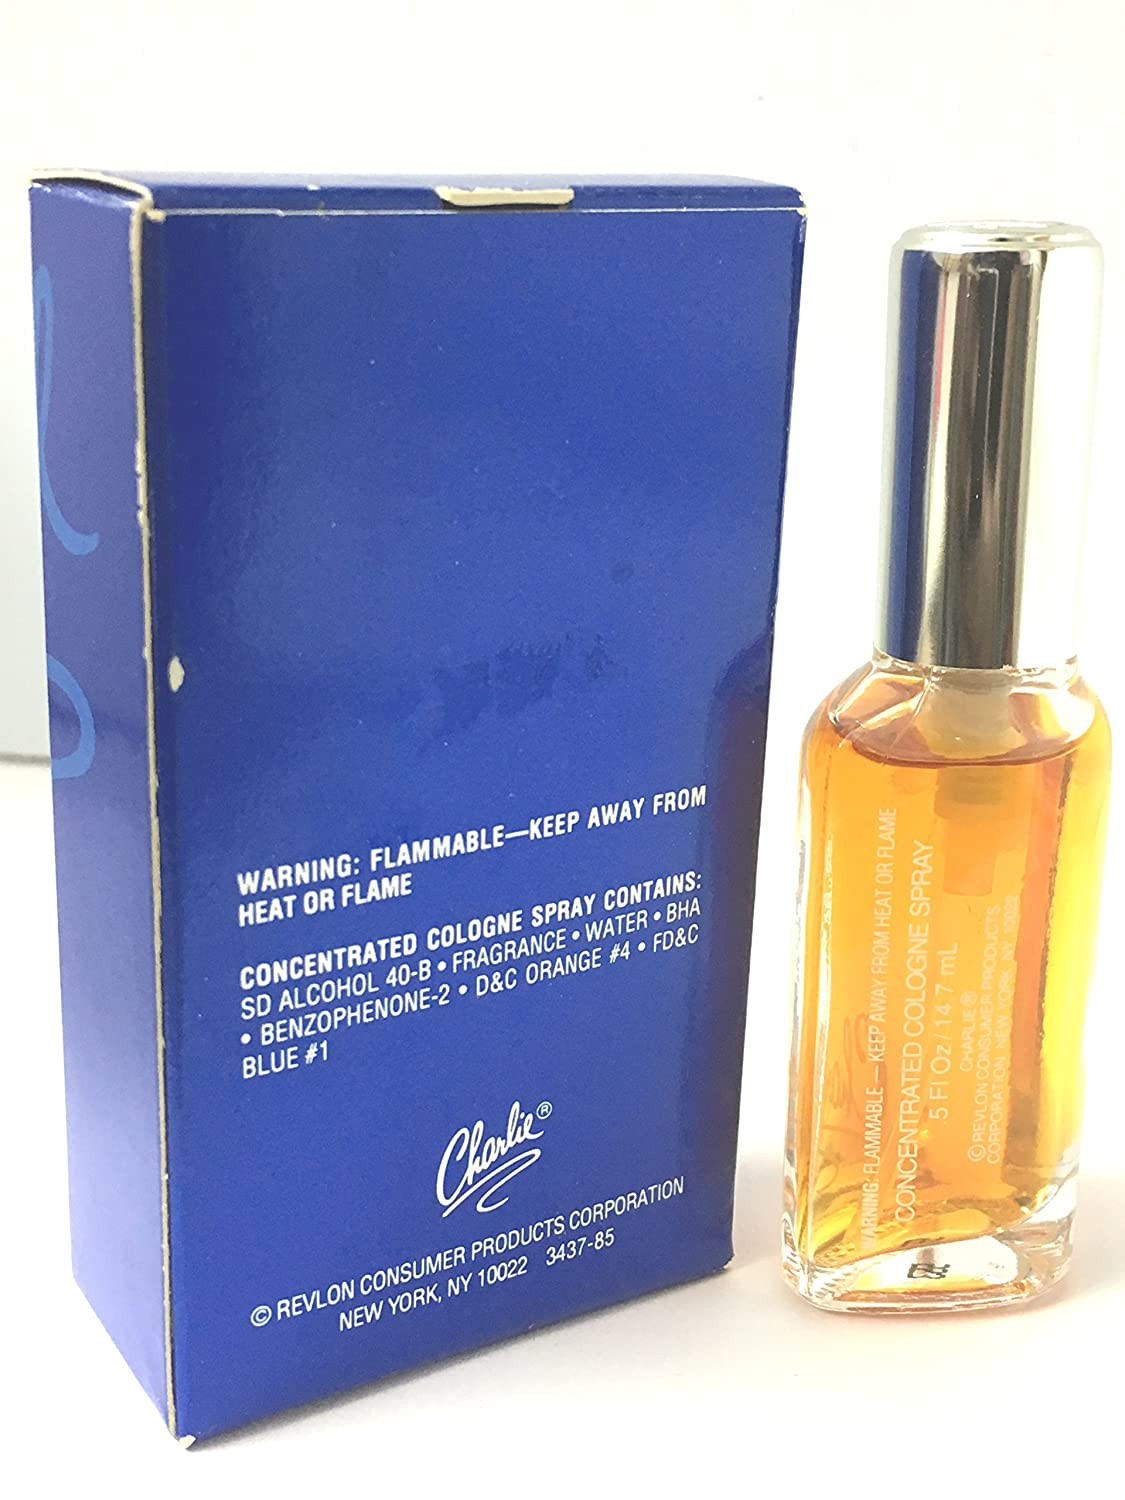 Amazon.com : Charlie Original Cologne Spray .5 Fl Oz Travel Size : Beauty